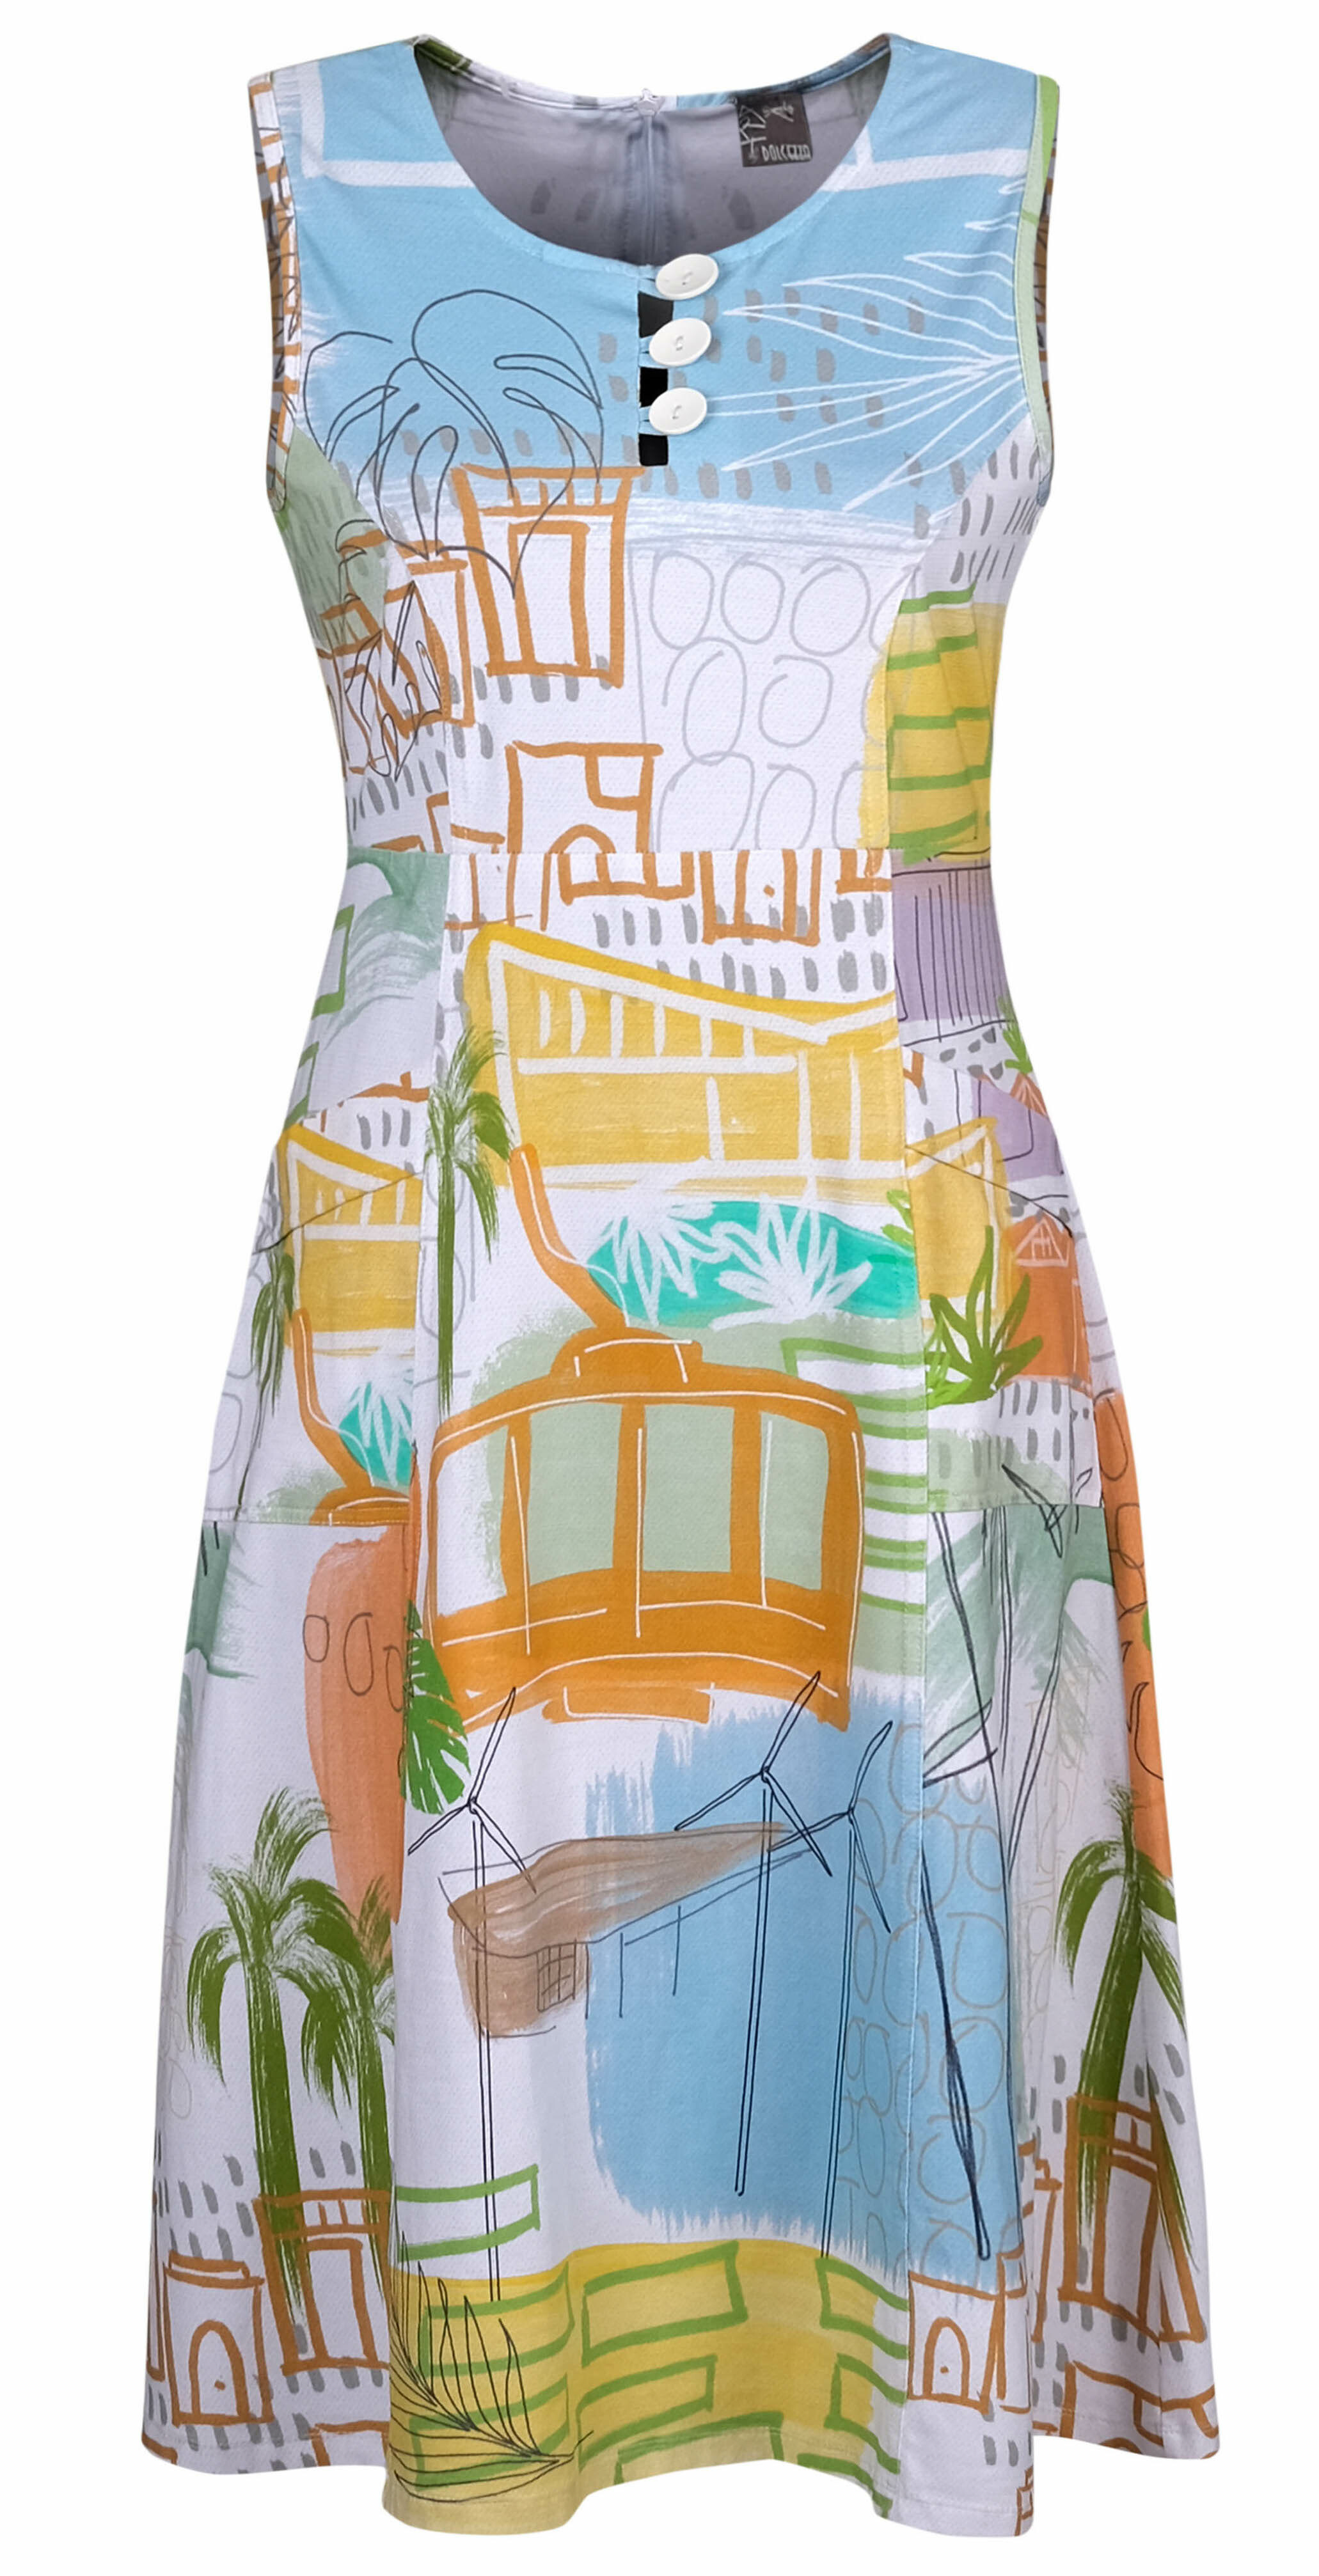 Simply Art Dolcezza: Palm Springs Cityscape Abstract Art Dress